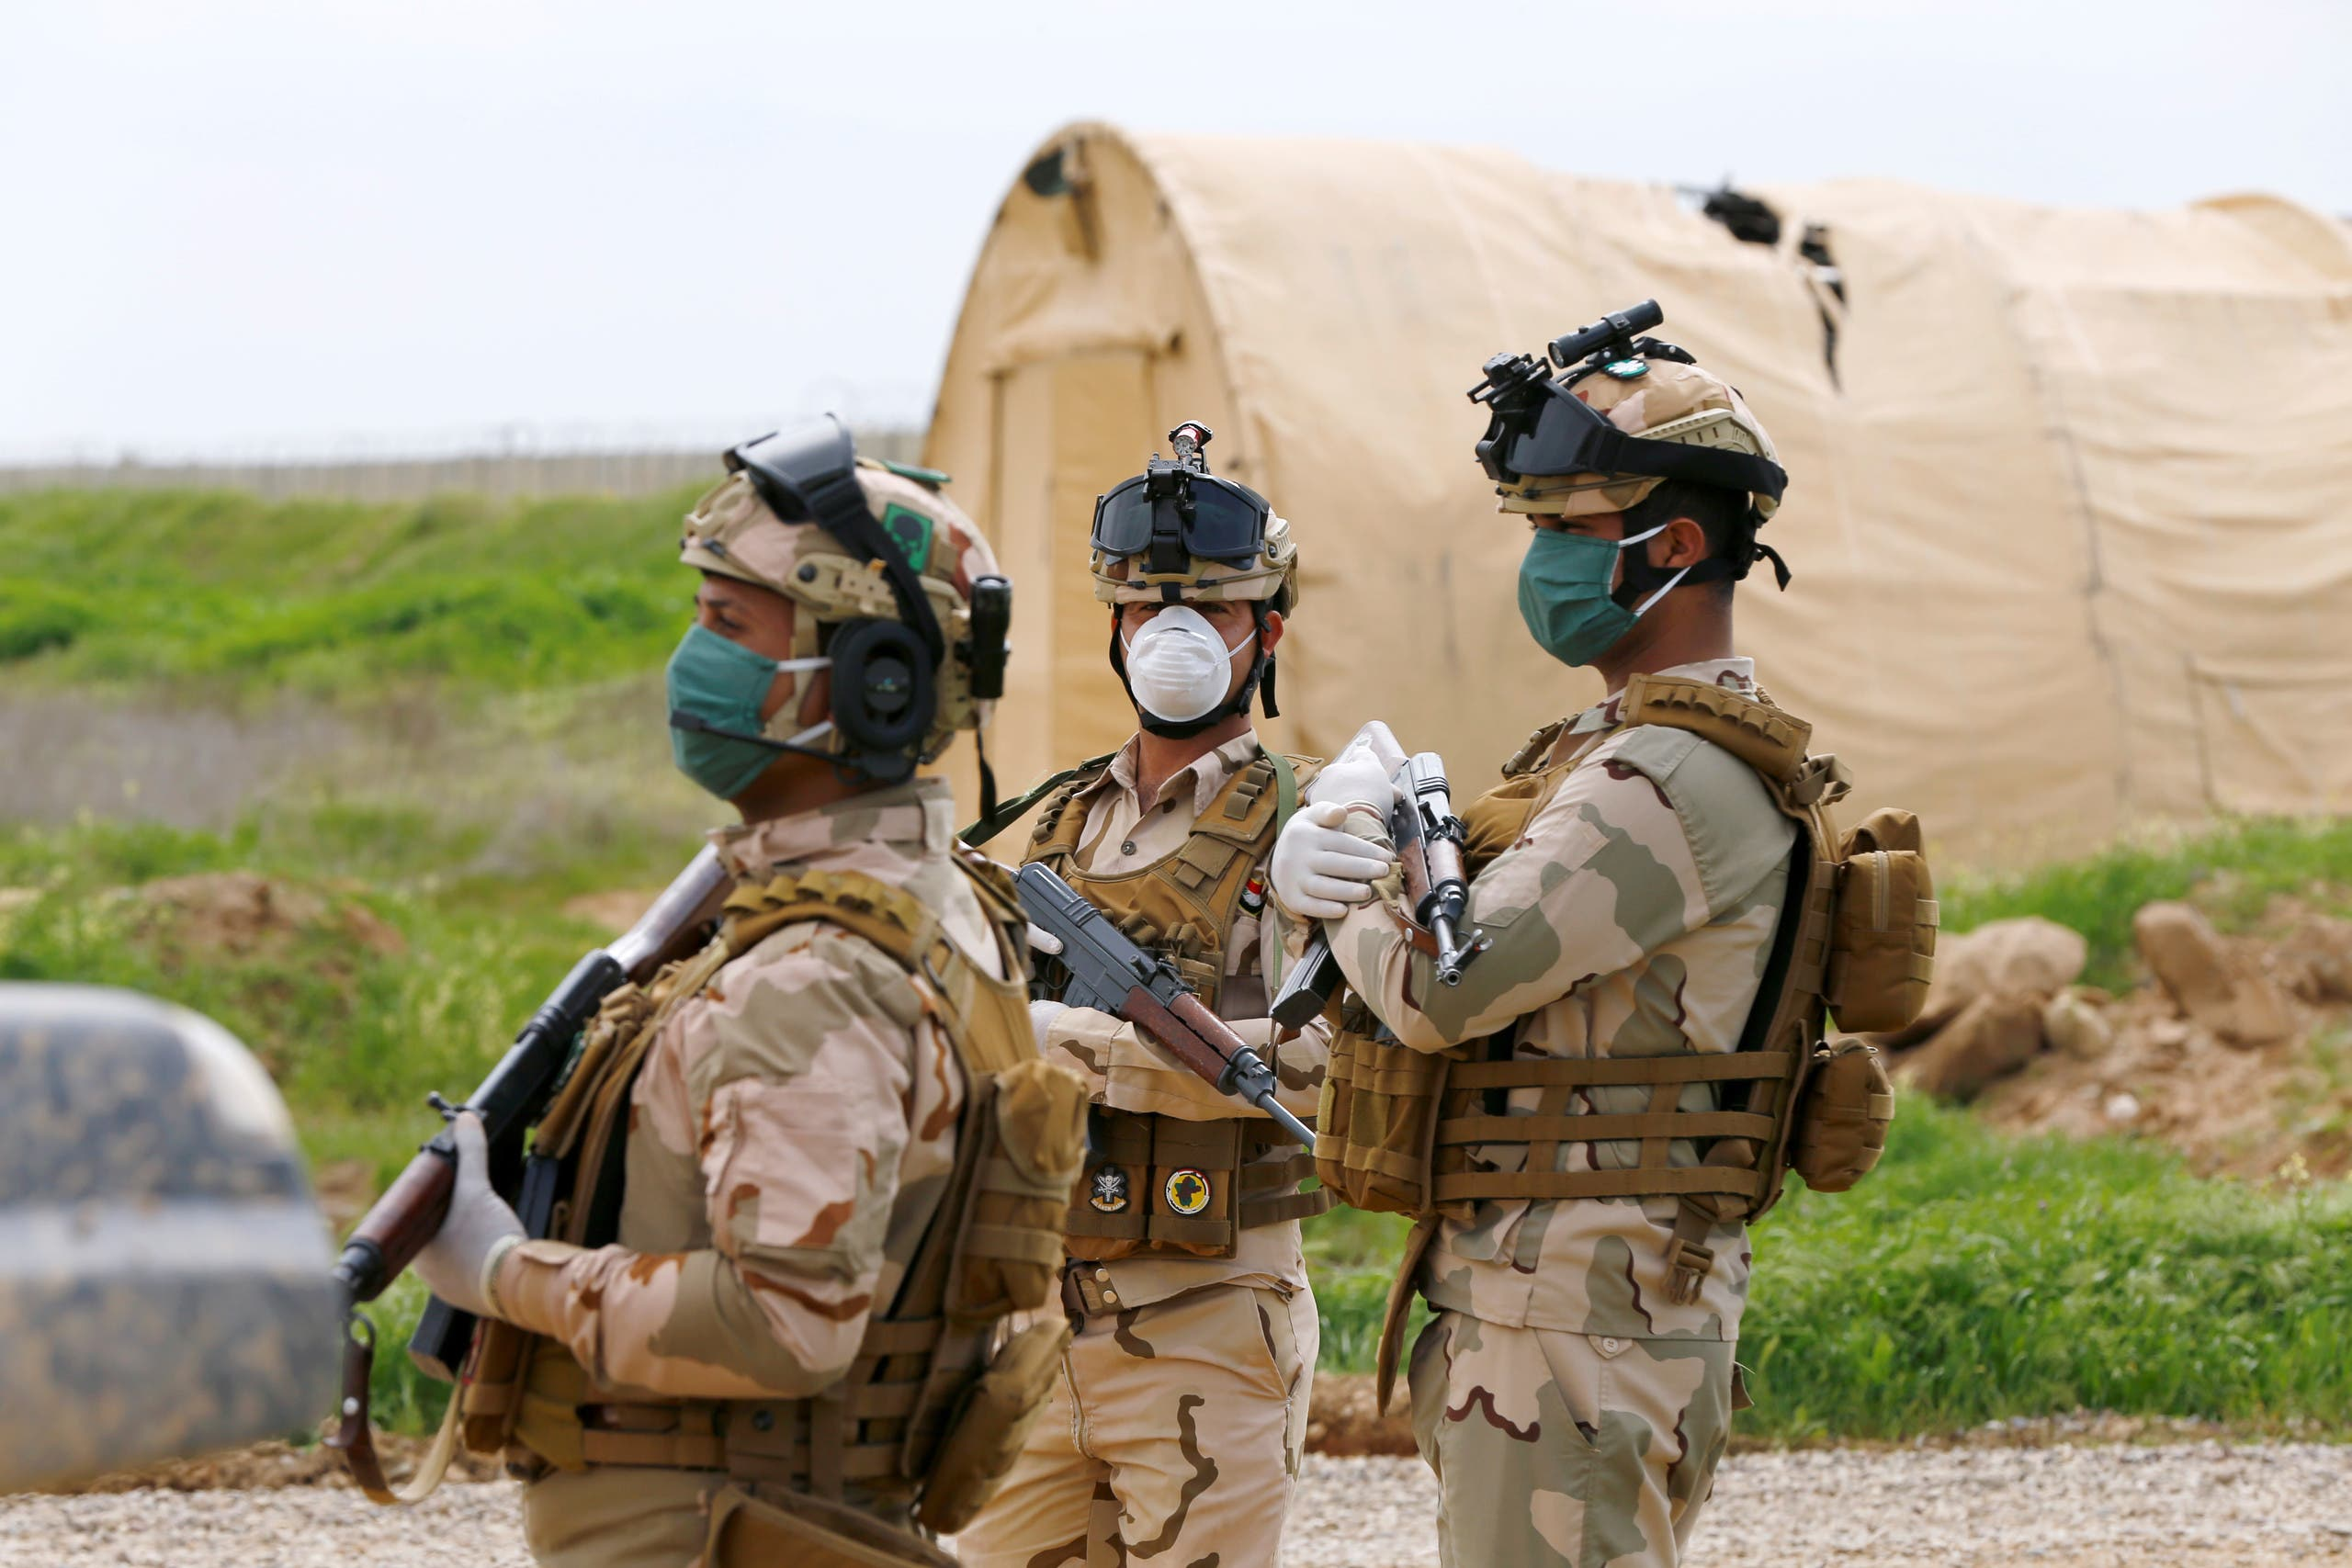 Iraqi soldiers wear protective face masks, following the outbreak of coronavirus disease (COVID-19), as they stand guard during the hand over of Qayyarah Airfield West from US-led coalition forces to Iraqi Security Forces, in the south of Mosul, Iraq March 26, 2020. (Reuters)